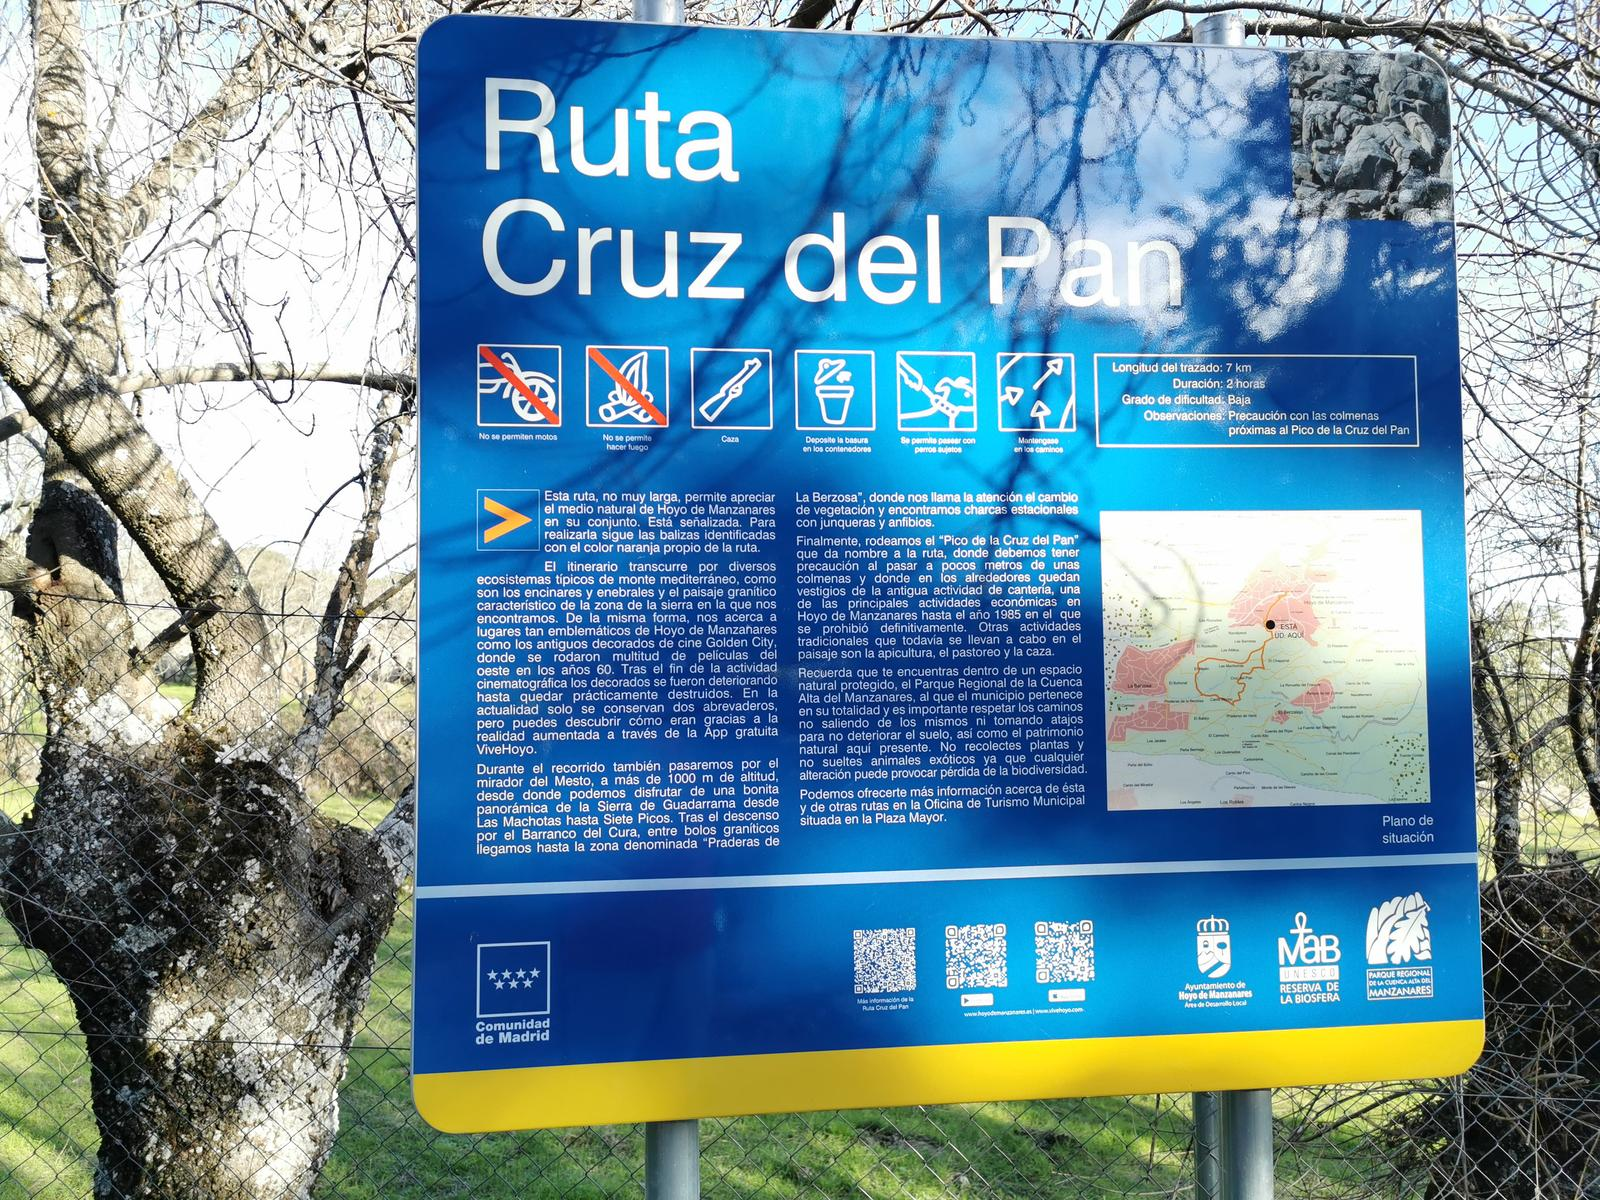 Photo of RUTA DE CRUZ DE PAN (Hoyo de Manzanares) jb